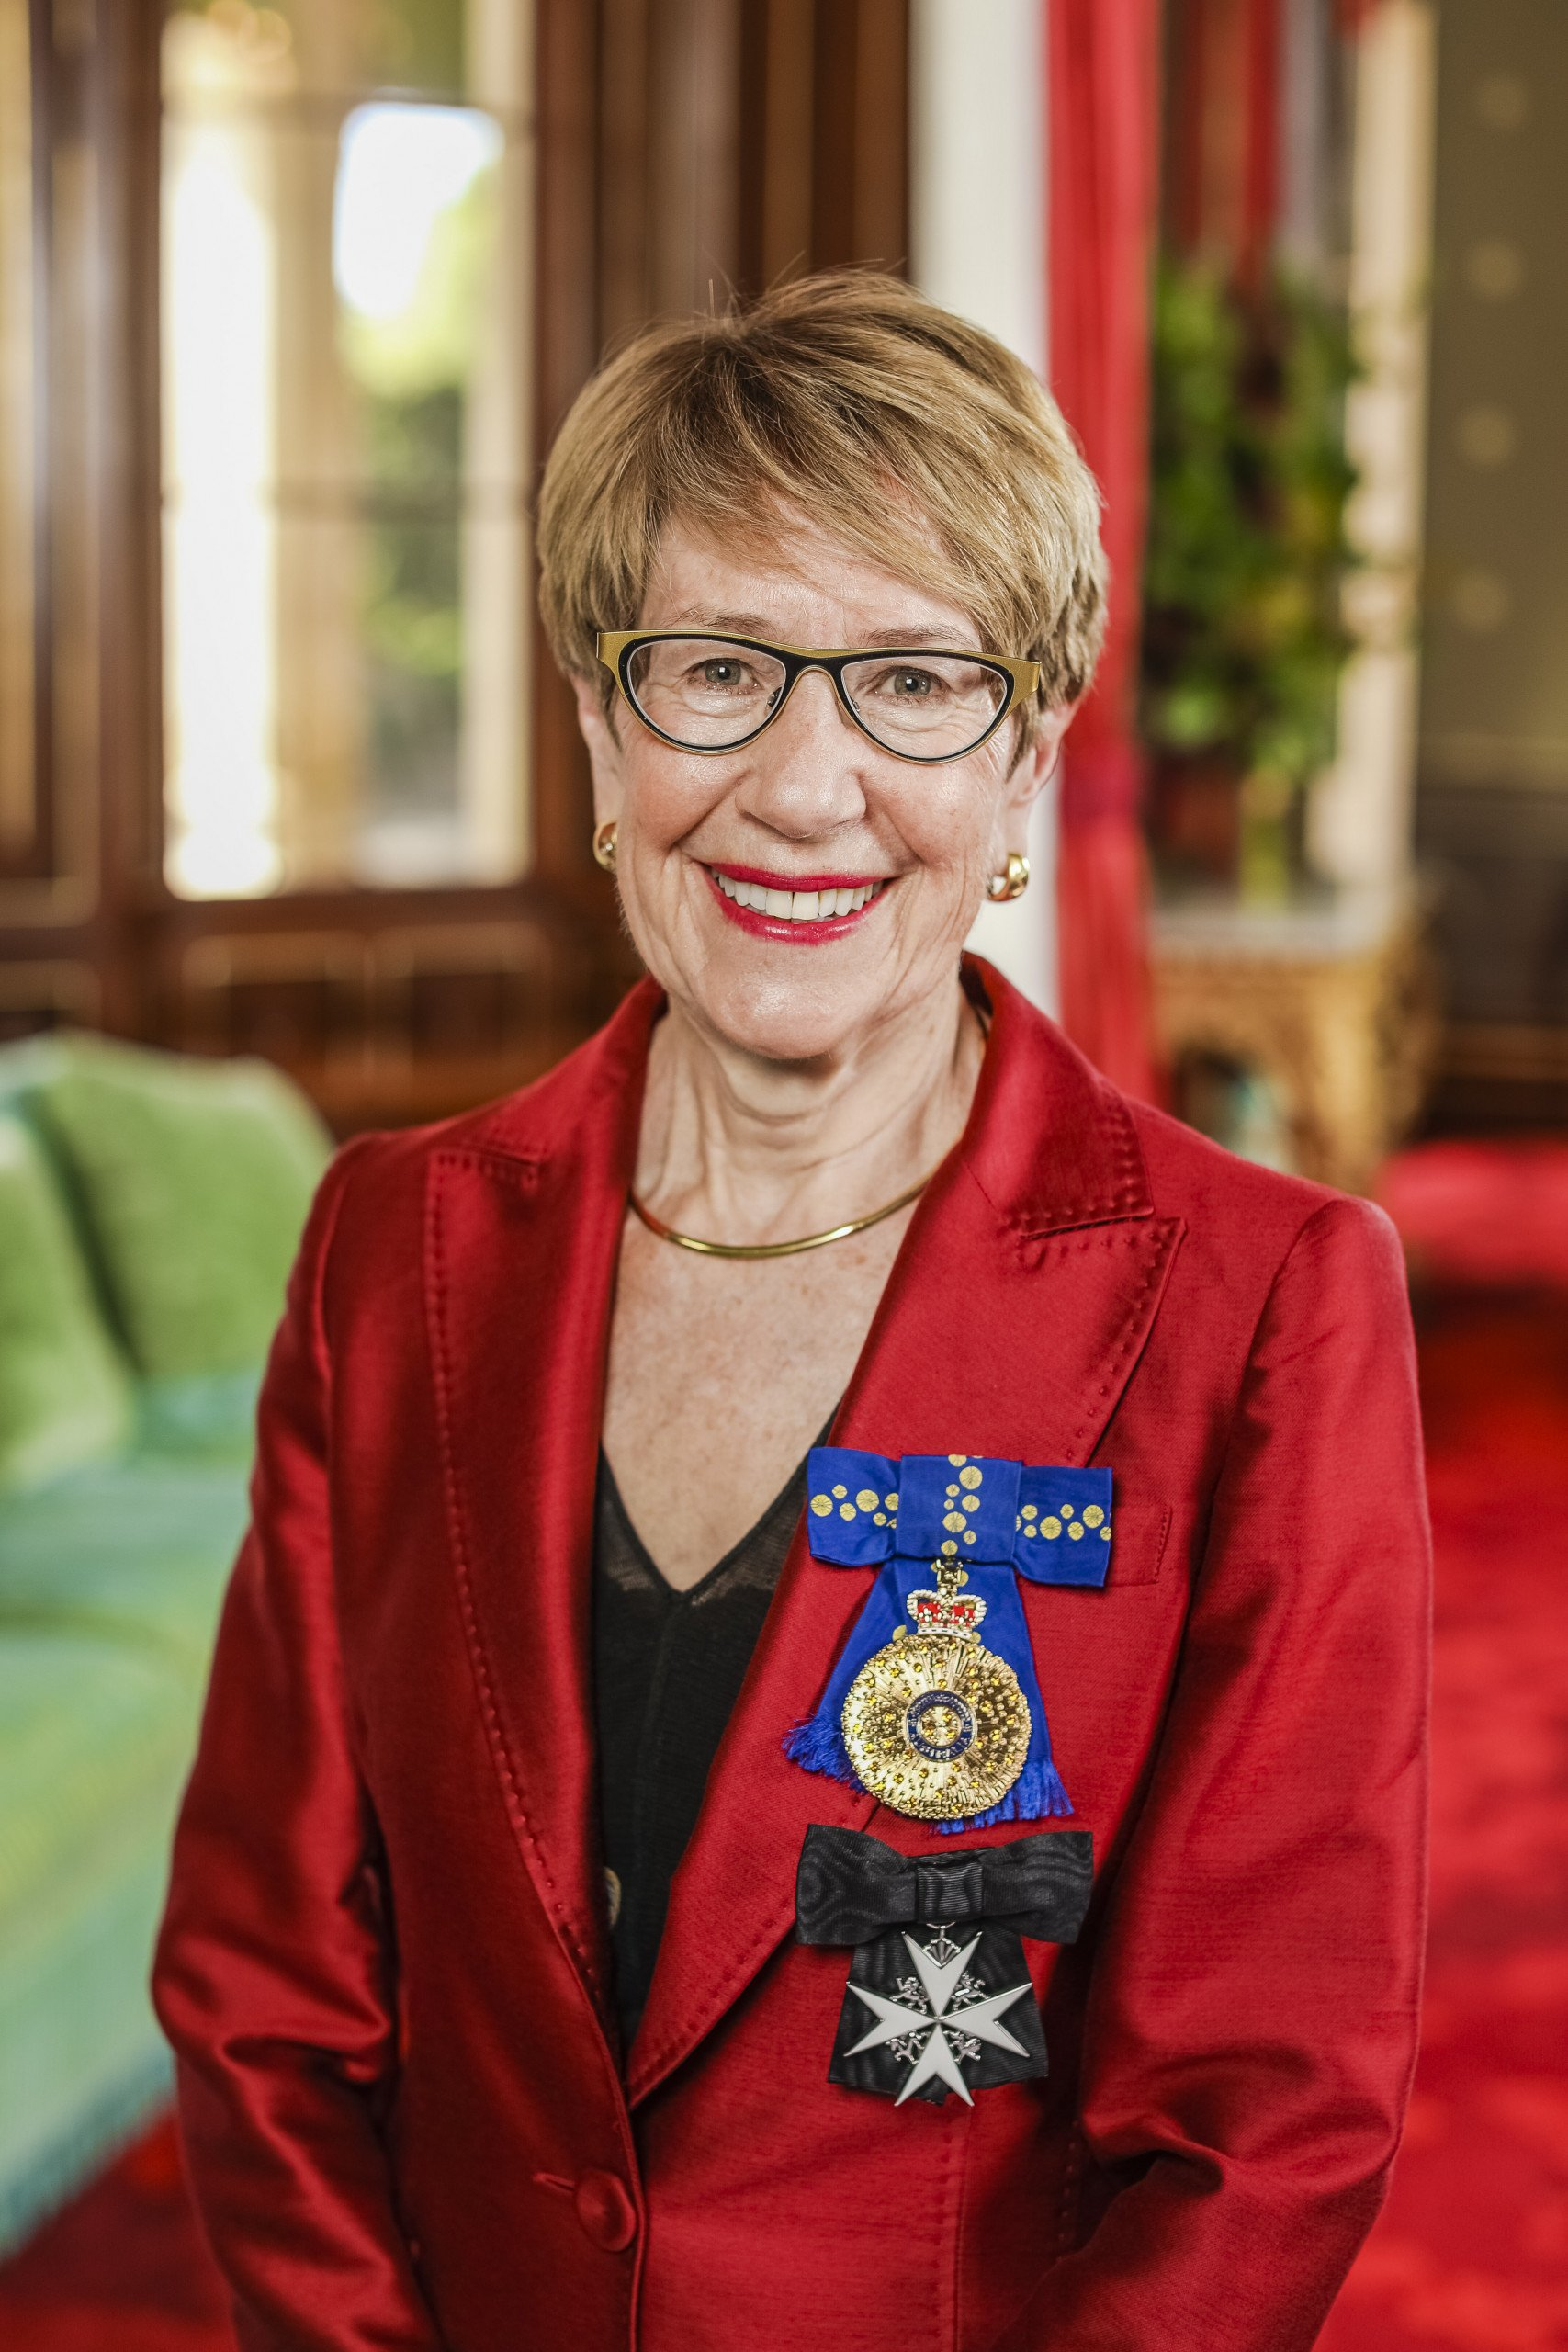 Her Excellency the Honourable Margaret Beazley AC QC Governor of New South Wales